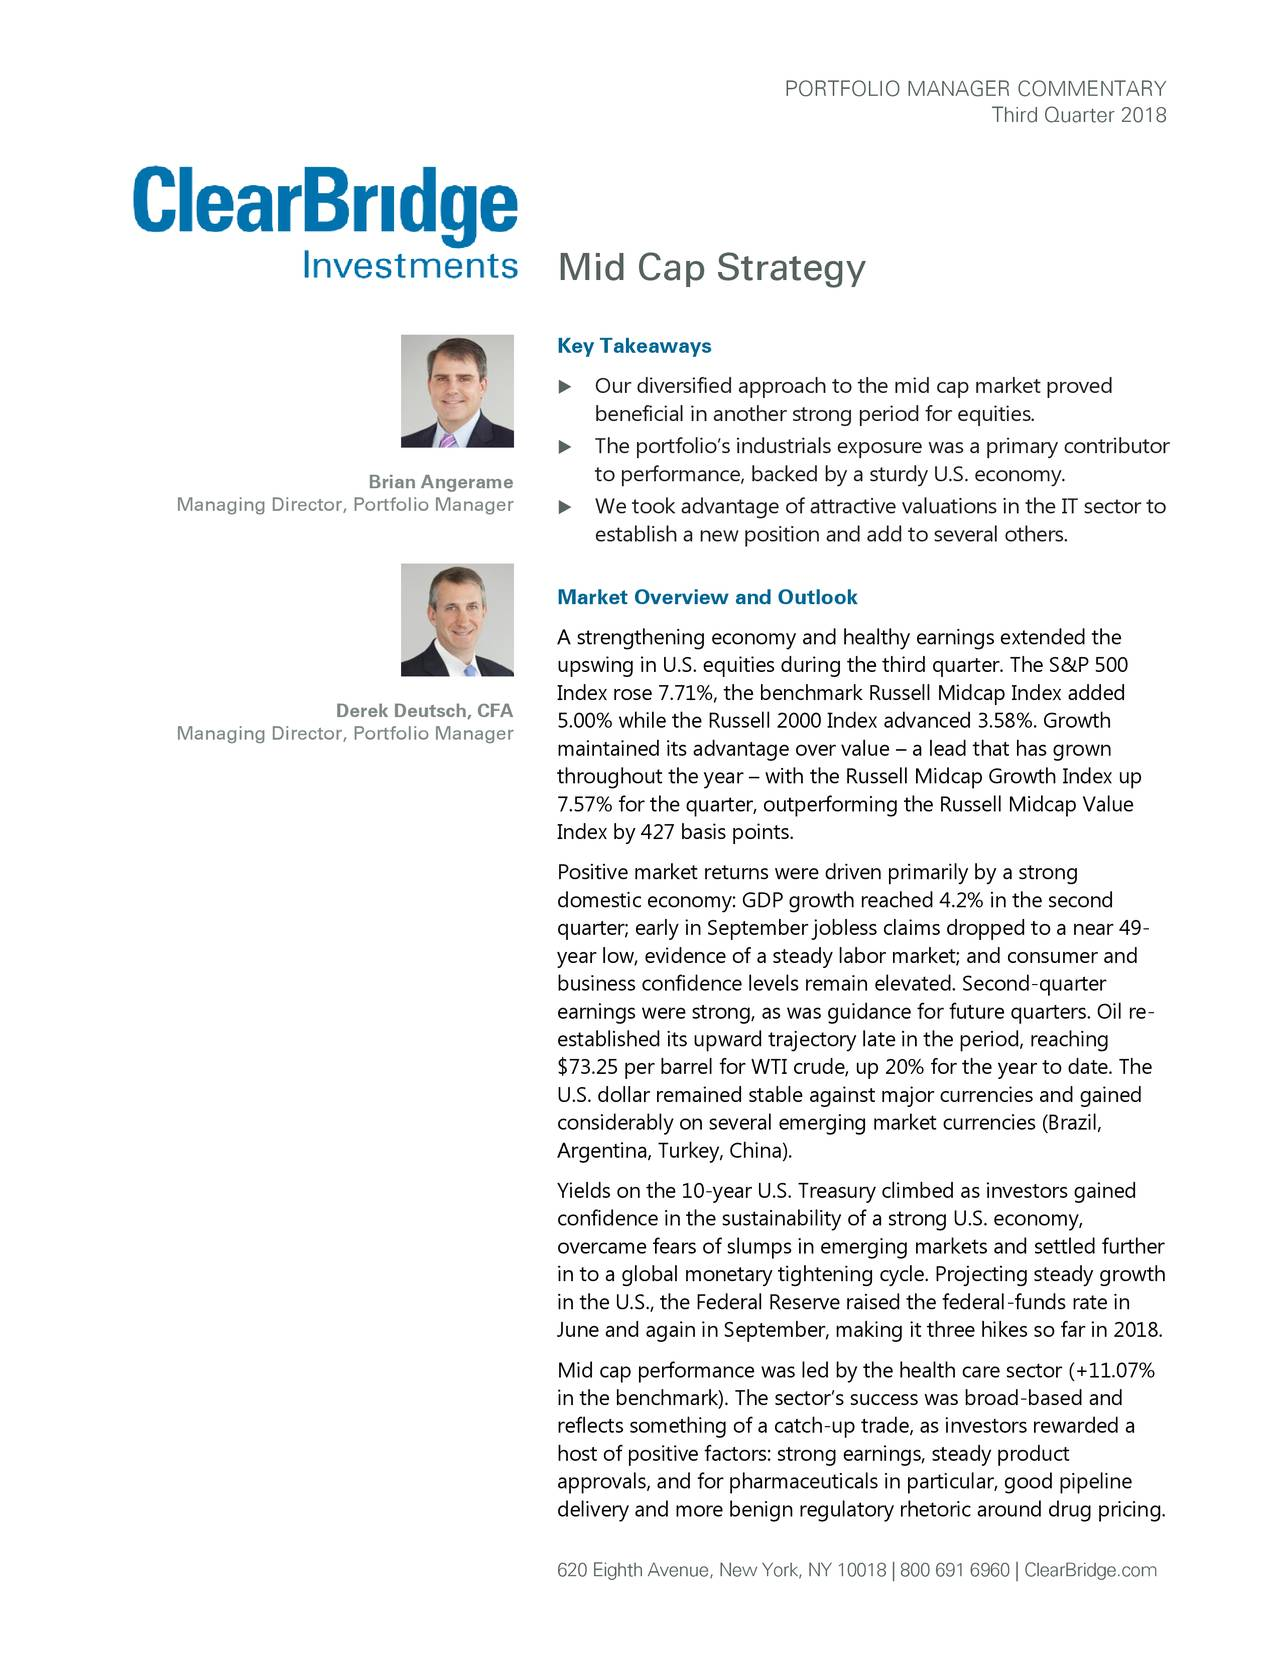 Third Quarter 2018 Mid Cap Strategy Key Takeaways  Our diversified approach to the mid cap market proved beneficial in another strong period for equities.  The portfolio's industrials exposure was a primary contributor Brian Angerame to performance, backed by a sturdy U.S. economy . Managing Director, Portfolio Manager  We took advantage of attractive valuations in the IT sector to establish a new position and add to several others. Market Overview and Outlook A strengthening economy and healthy earnings extended the upswing in U.S. equities during the third quarter. The S&P 500 Index rose 7.71%, the benchmark Russell Midcap Index added Derek Deutsch, CFA Managing Director, Portfolio Manager 5.00% while the Russell 2000 Index advanced 3.58%. Growth maintained its advantage over value – a lead that has grown throughout the year – with the Russell Midcap Growth Index up 7.57% for the quarter, outperforming the Russell Midcap Value Index by 427 basis points. Positive market returns were driven primarily by a strong domestic economy: GDP growth reached 4.2% in the second quarter; early in September jobless claims dropped to a near 49- year low, evidence of a steady labor market; and consumer and business confidence levels remain elevated. Second-quarter earnings were strong, as was guidance for future quarters. Oil re- established its upward trajectory late in the period, reaching $73.25 per barrel for WTI crude, up 20% for the year to date. The U.S. dollar remained stable against major currencies and gained considerably on several emerging market currencies (Brazil, Argentina, Turkey, China). Yields on the 10-year U.S. Treasury climbed as investors gained confidence in the sustainability of a strong U.S. economy, overcame fears of slumps in emerging markets and settled further in to a global monetary tightening cycle. Projecting steady growth in the U.S., the Federal Reserve raised the federal-funds rate in June and again in September, making it three hikes so far in 2018. Mid cap performance was led by the health care sector (+11.07% in the benchmark). The sector's success was broad-based and reflects something of a catch-up trade, as investors rewarded a host of positive factors: strong earnings, steady product approvals, and for pharmaceuticals in particular, good pipeline delivery and more benign regulatory rhetoric around drug pricing. 620 Eighth Avenue, New York, NY 10018 | 800 691 6960 | ClearBridge.com